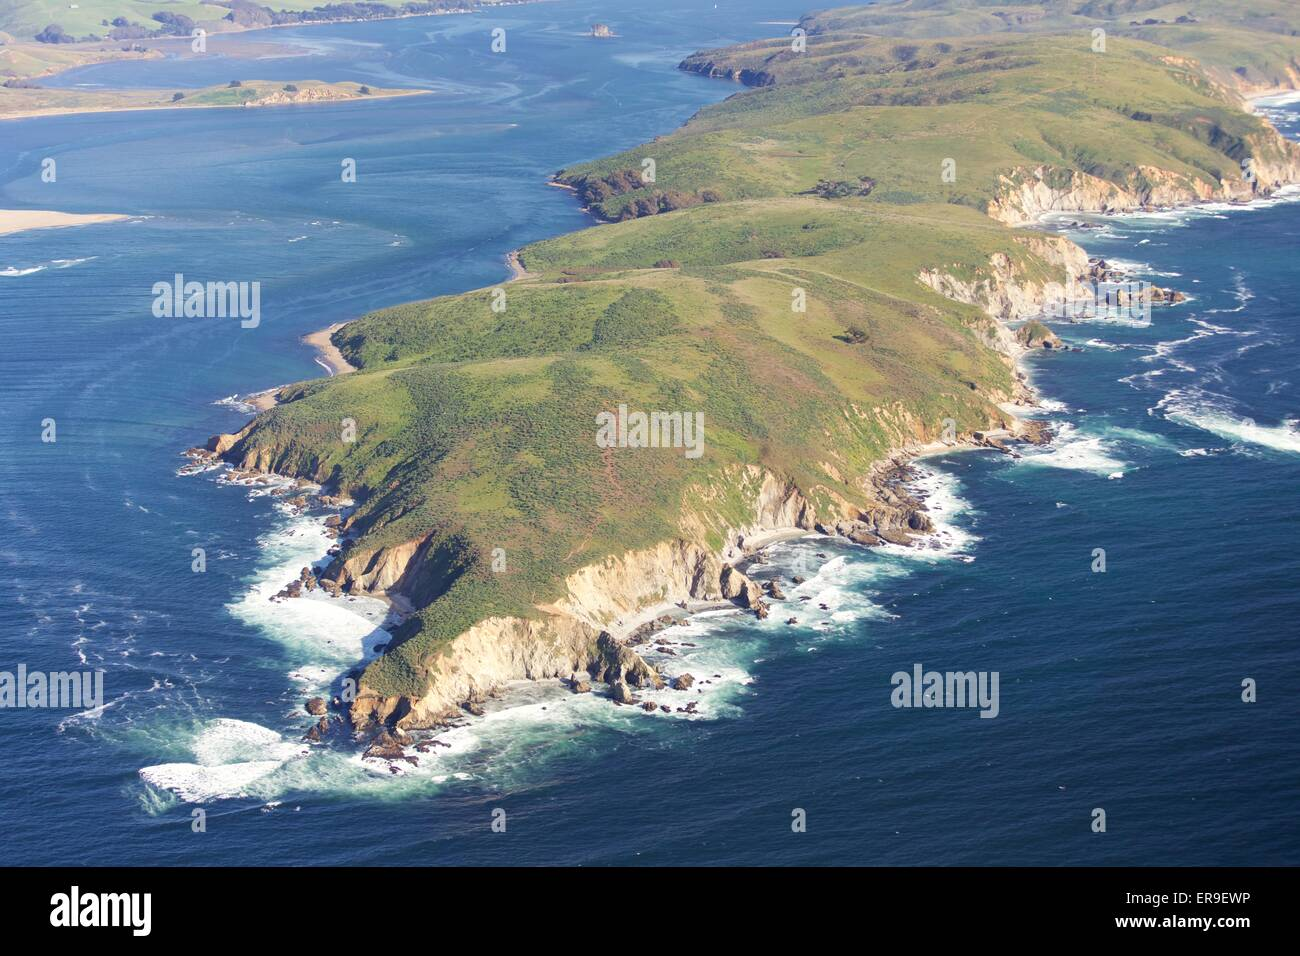 Aerial view over Point Reyes, Tomales Point in Marin County, California, near San Francisco, in spring. - Stock Image